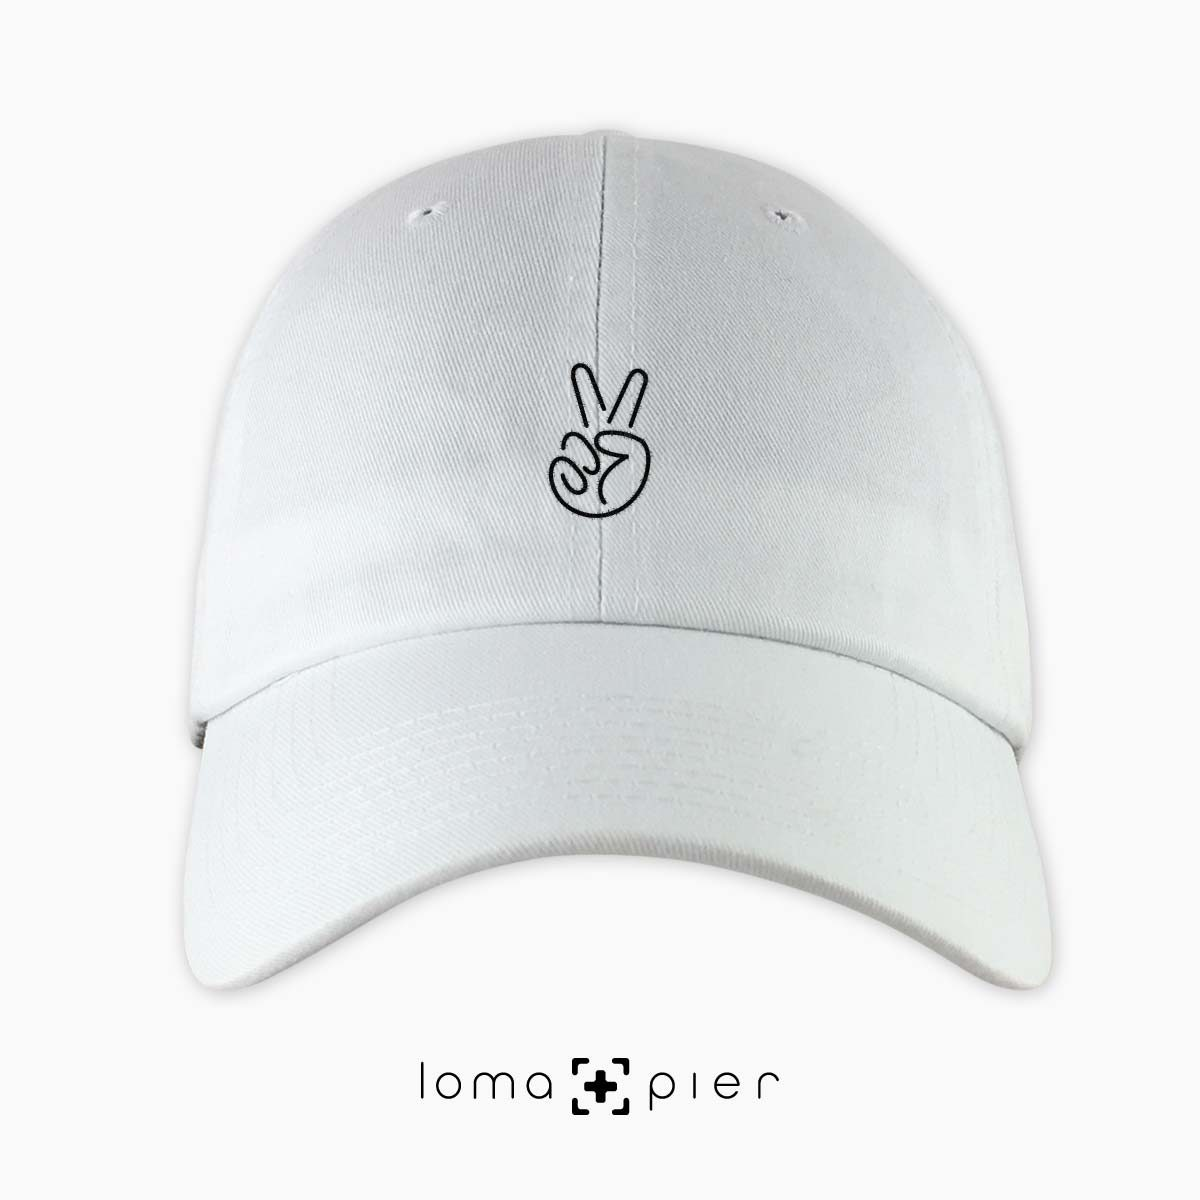 PEACE SIGN HAND icon embroidered on a white unstructured dad hat with black thread by loma+pier hat store made in the USA